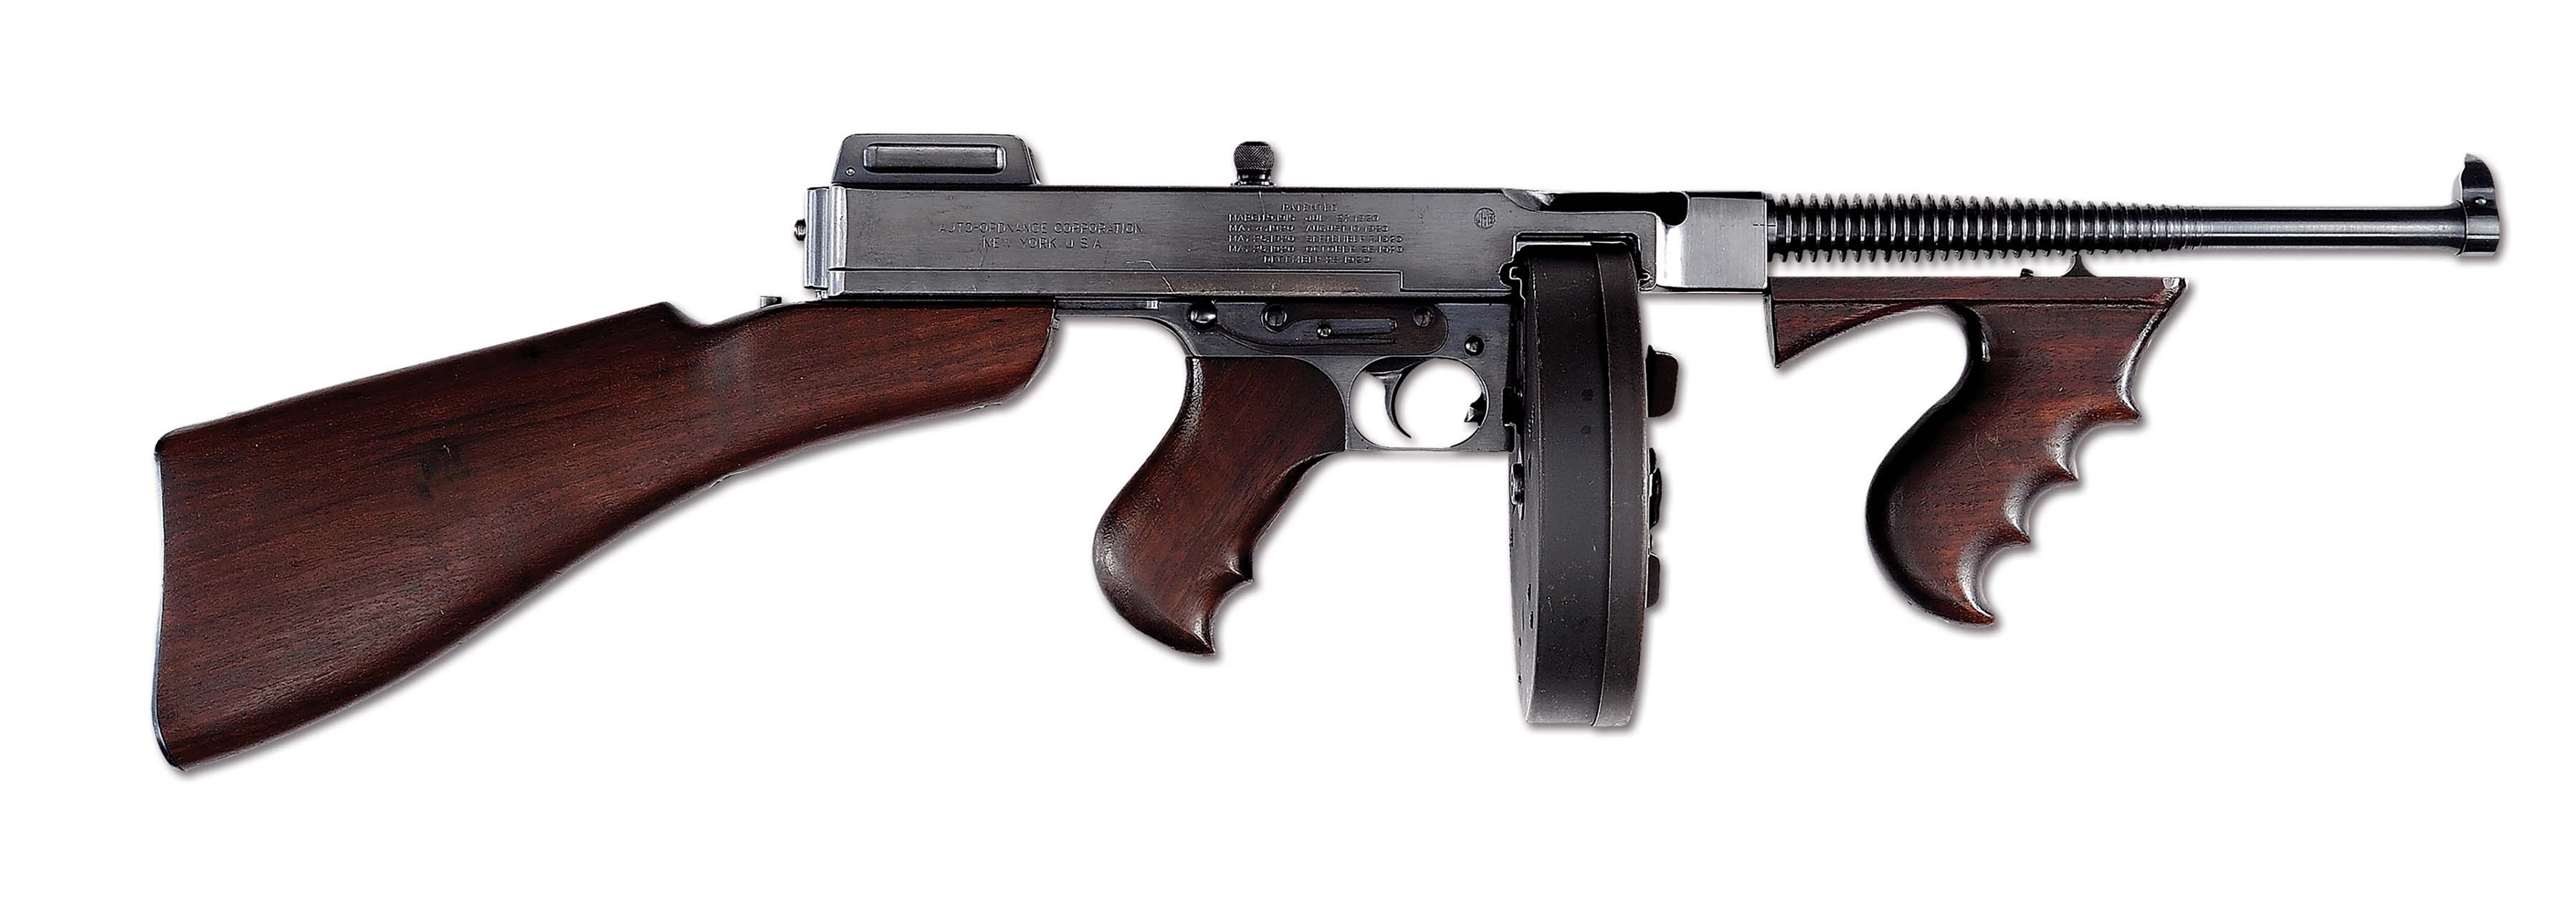 (N) Outstanding Condition 1 of 2 Consecutively Numbered Colt 1921A Thompson Machine Gun (Curio & Relic).